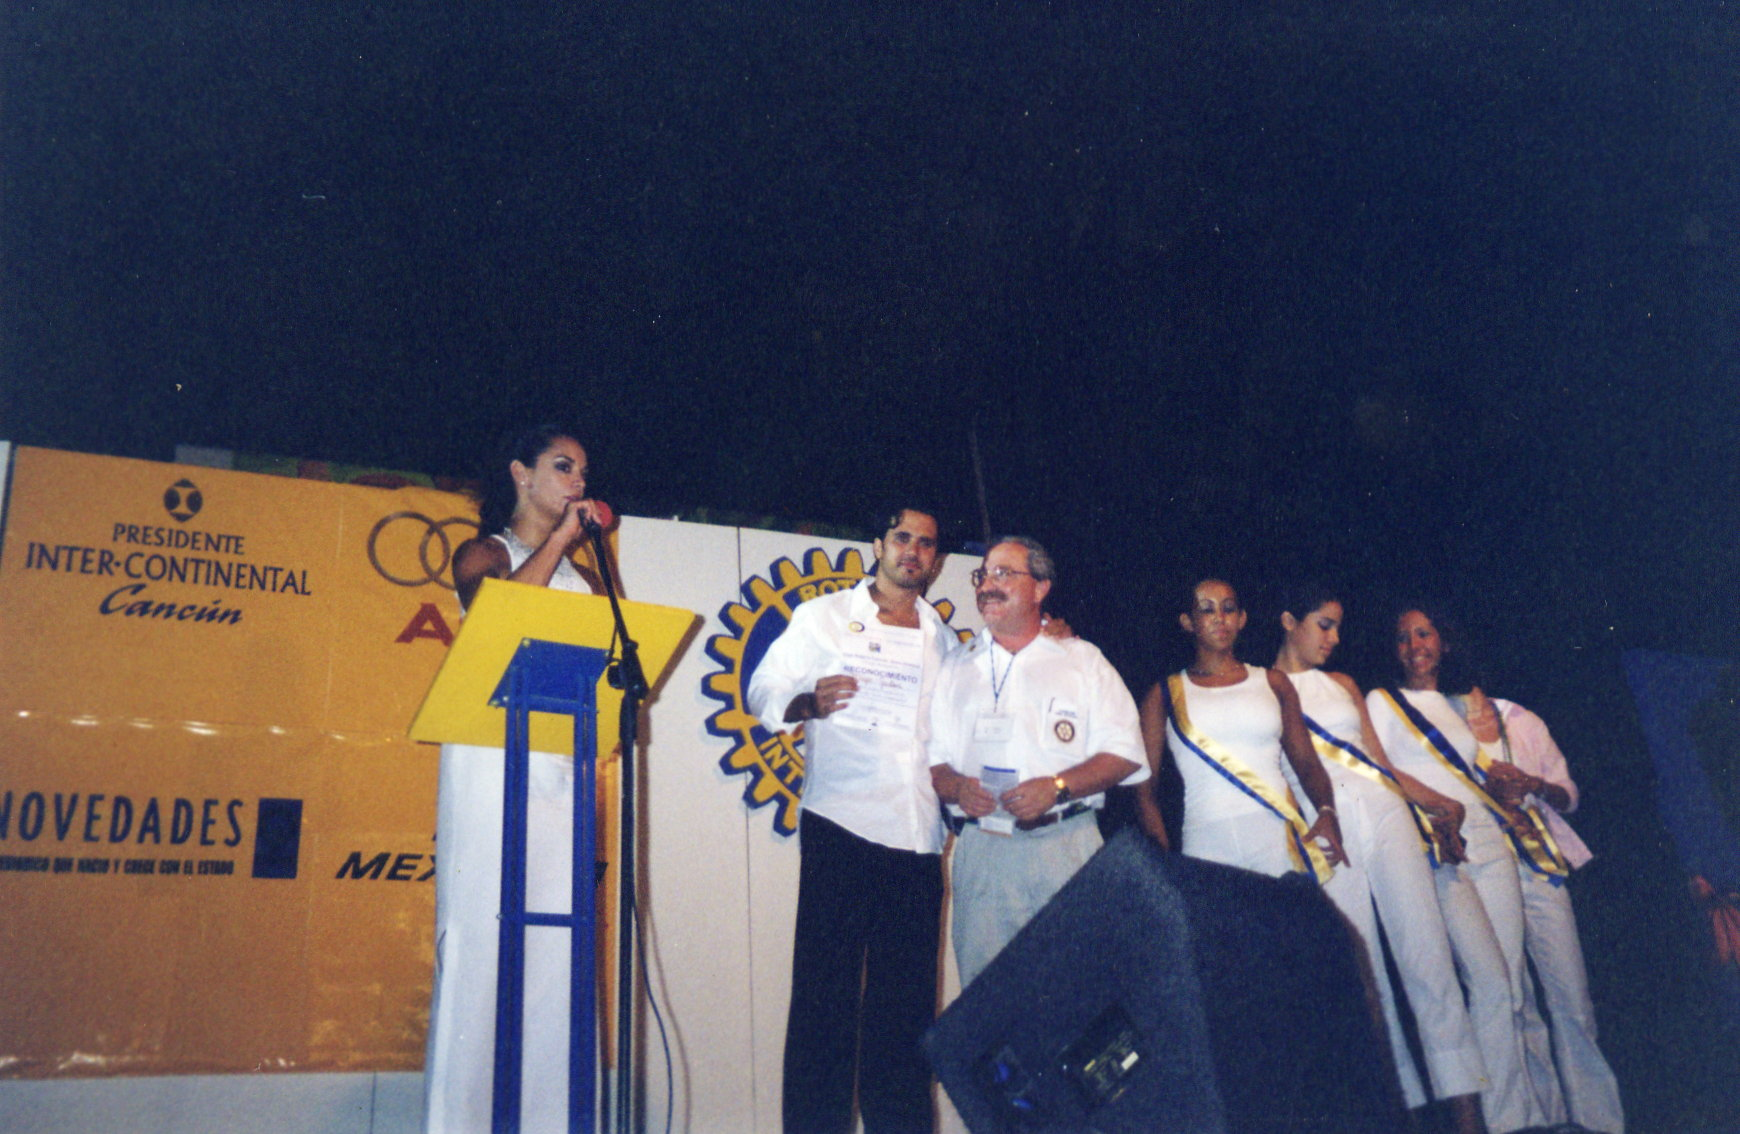 Recieving award for his Show in Cancun Mexico-Awards.jpg